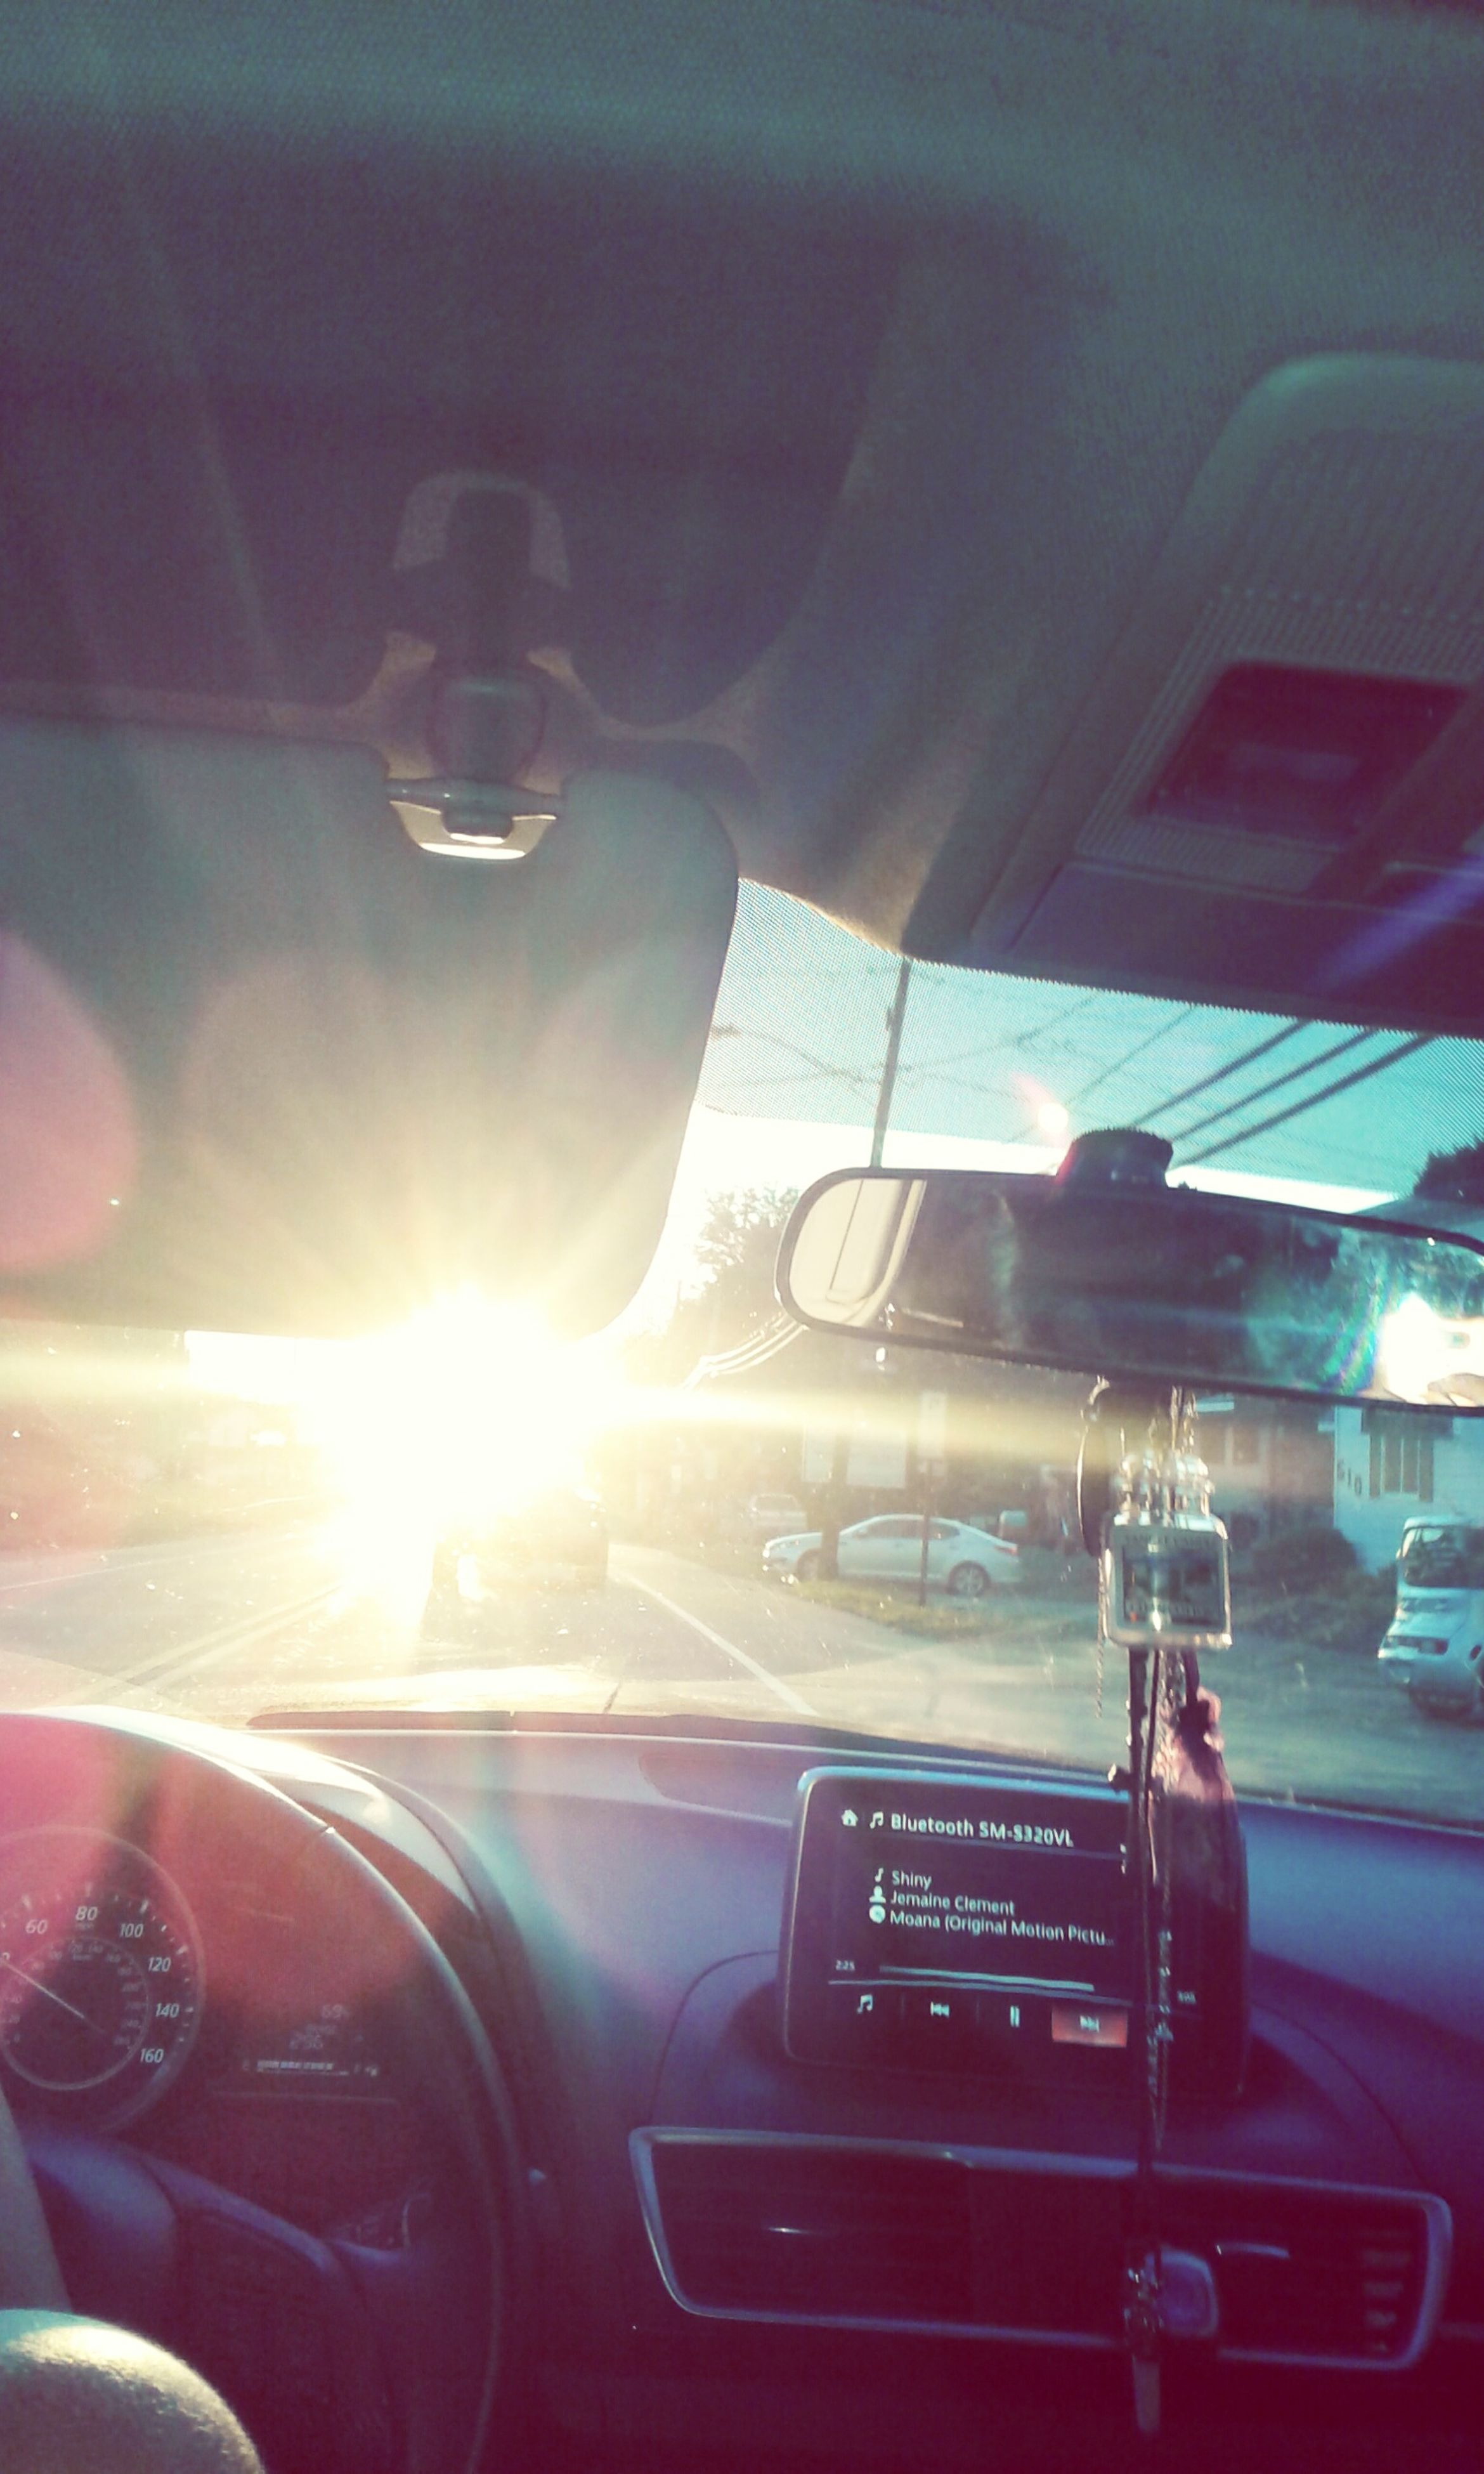 car, car interior, transportation, windshield, land vehicle, vehicle interior, steering wheel, mode of transport, dashboard, driving, windscreen, no people, close-up, day, speedometer, outdoors